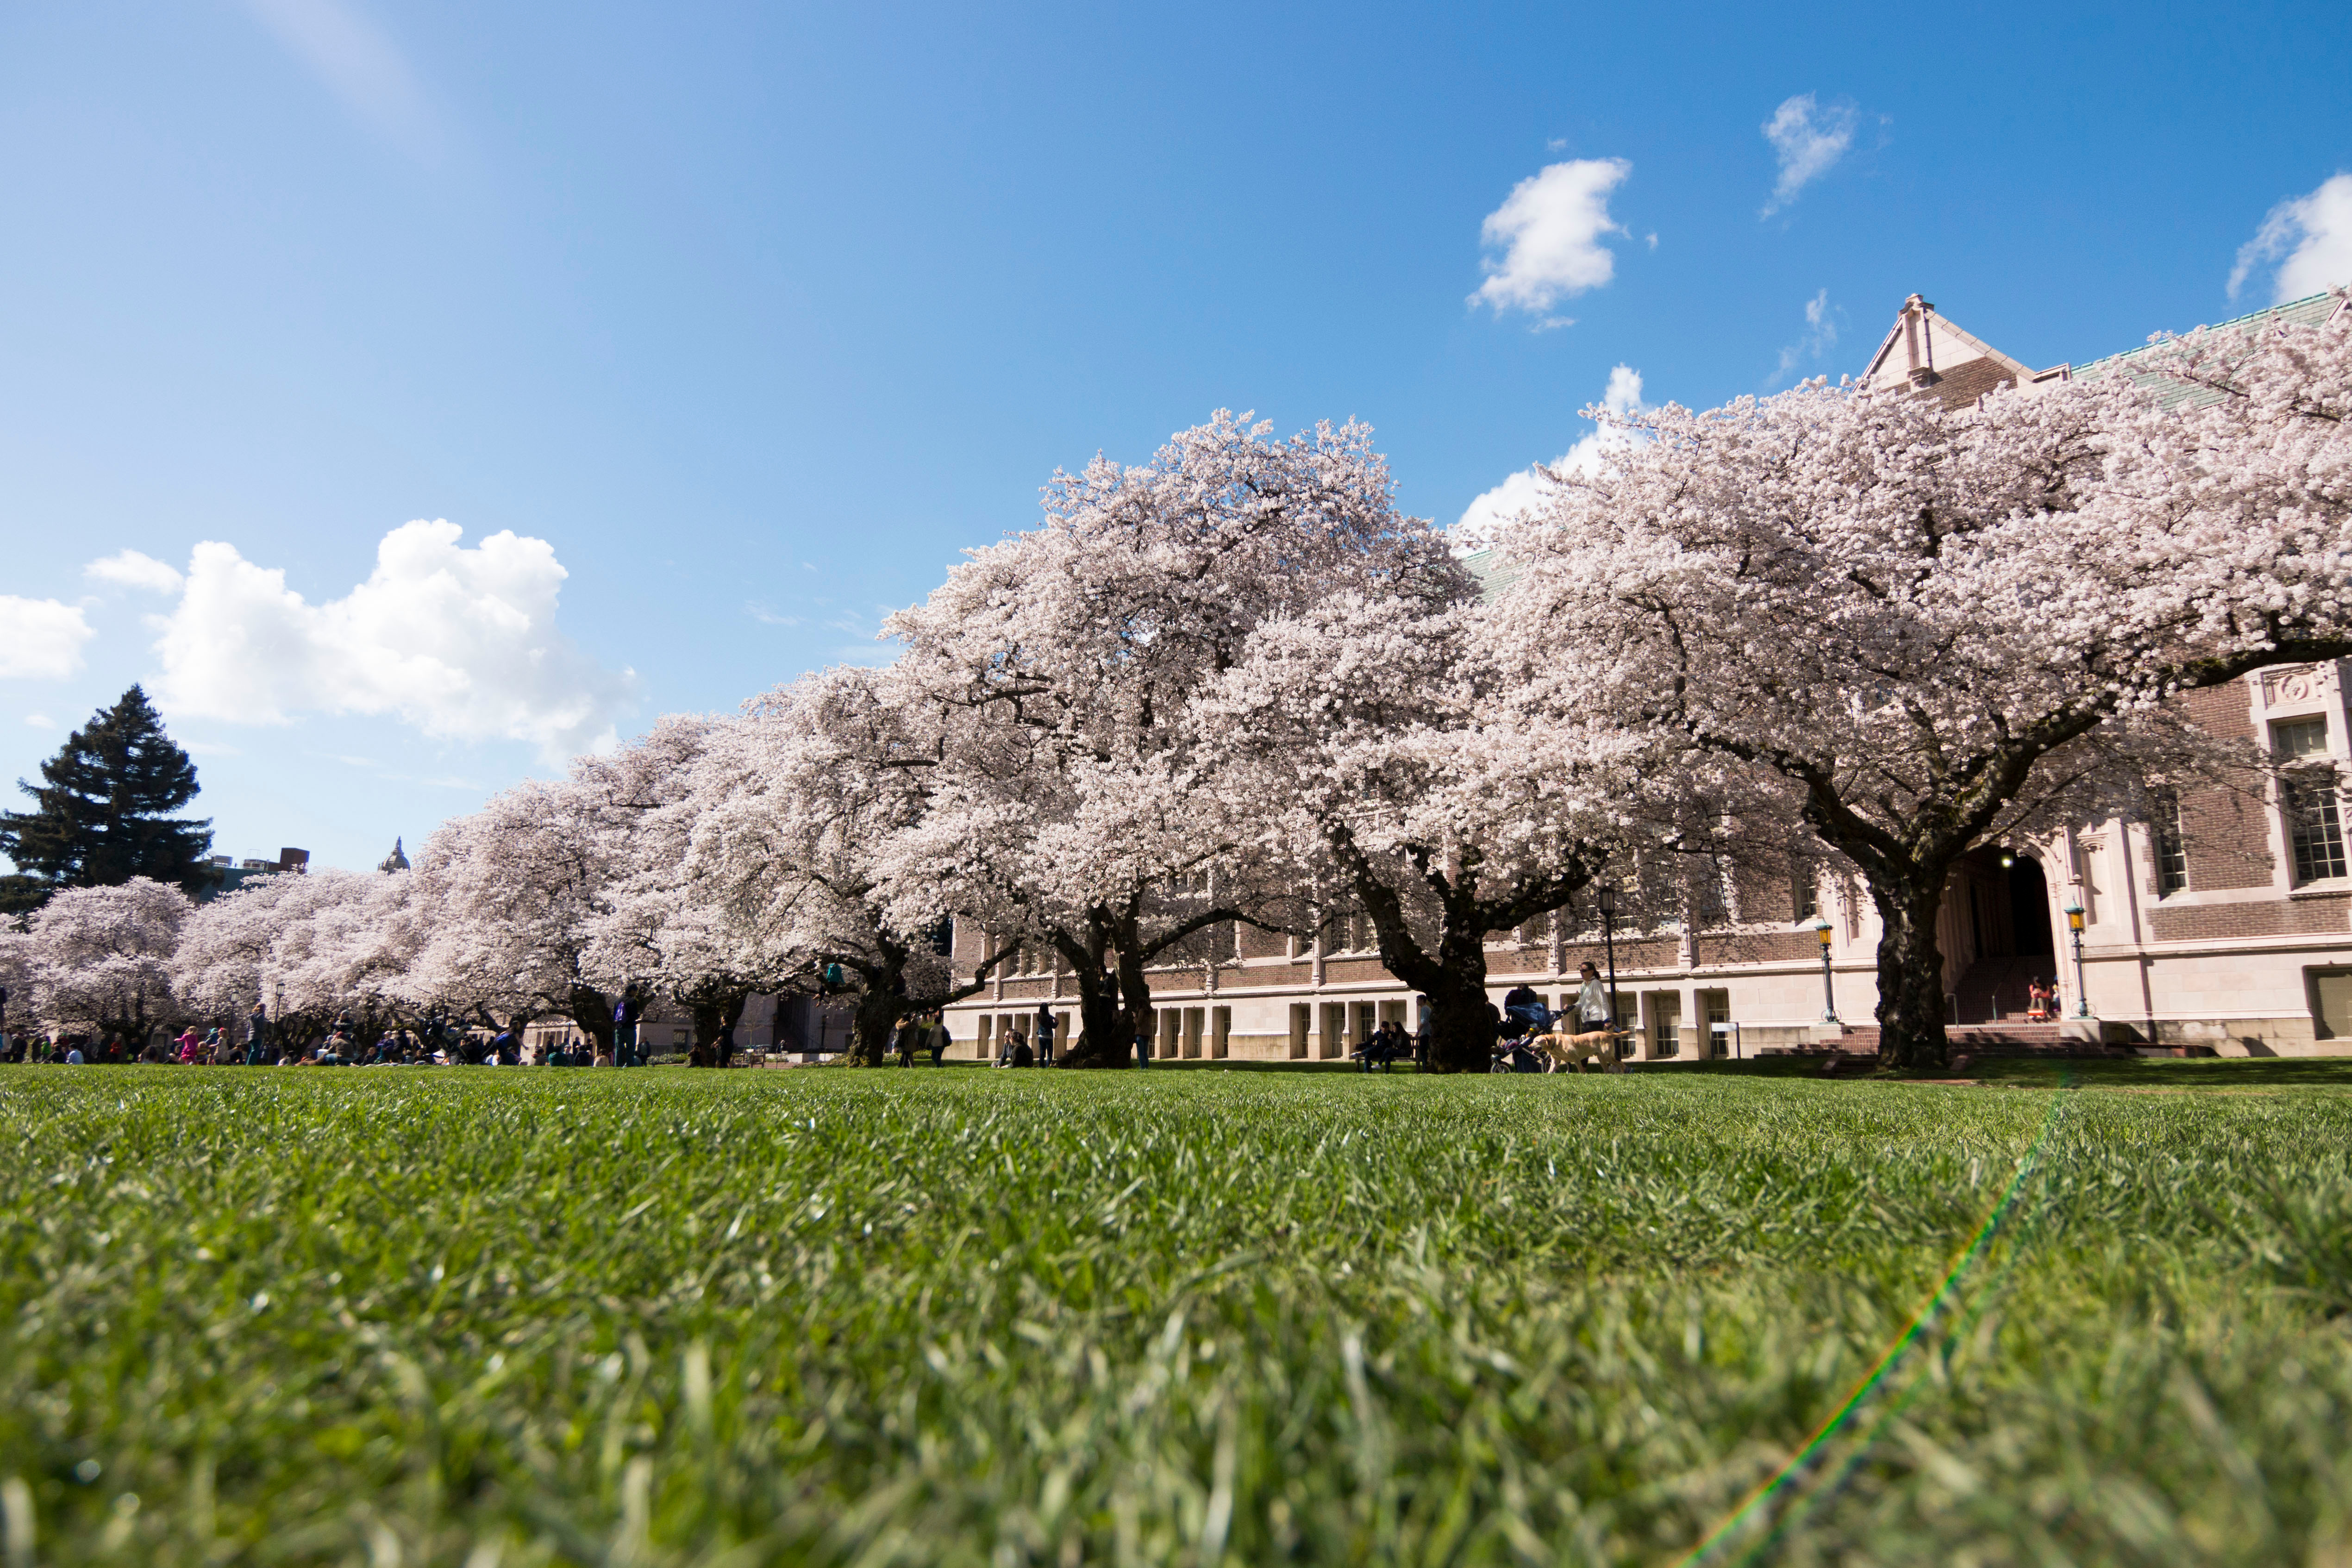 30, number of cherry trees that line The Quad